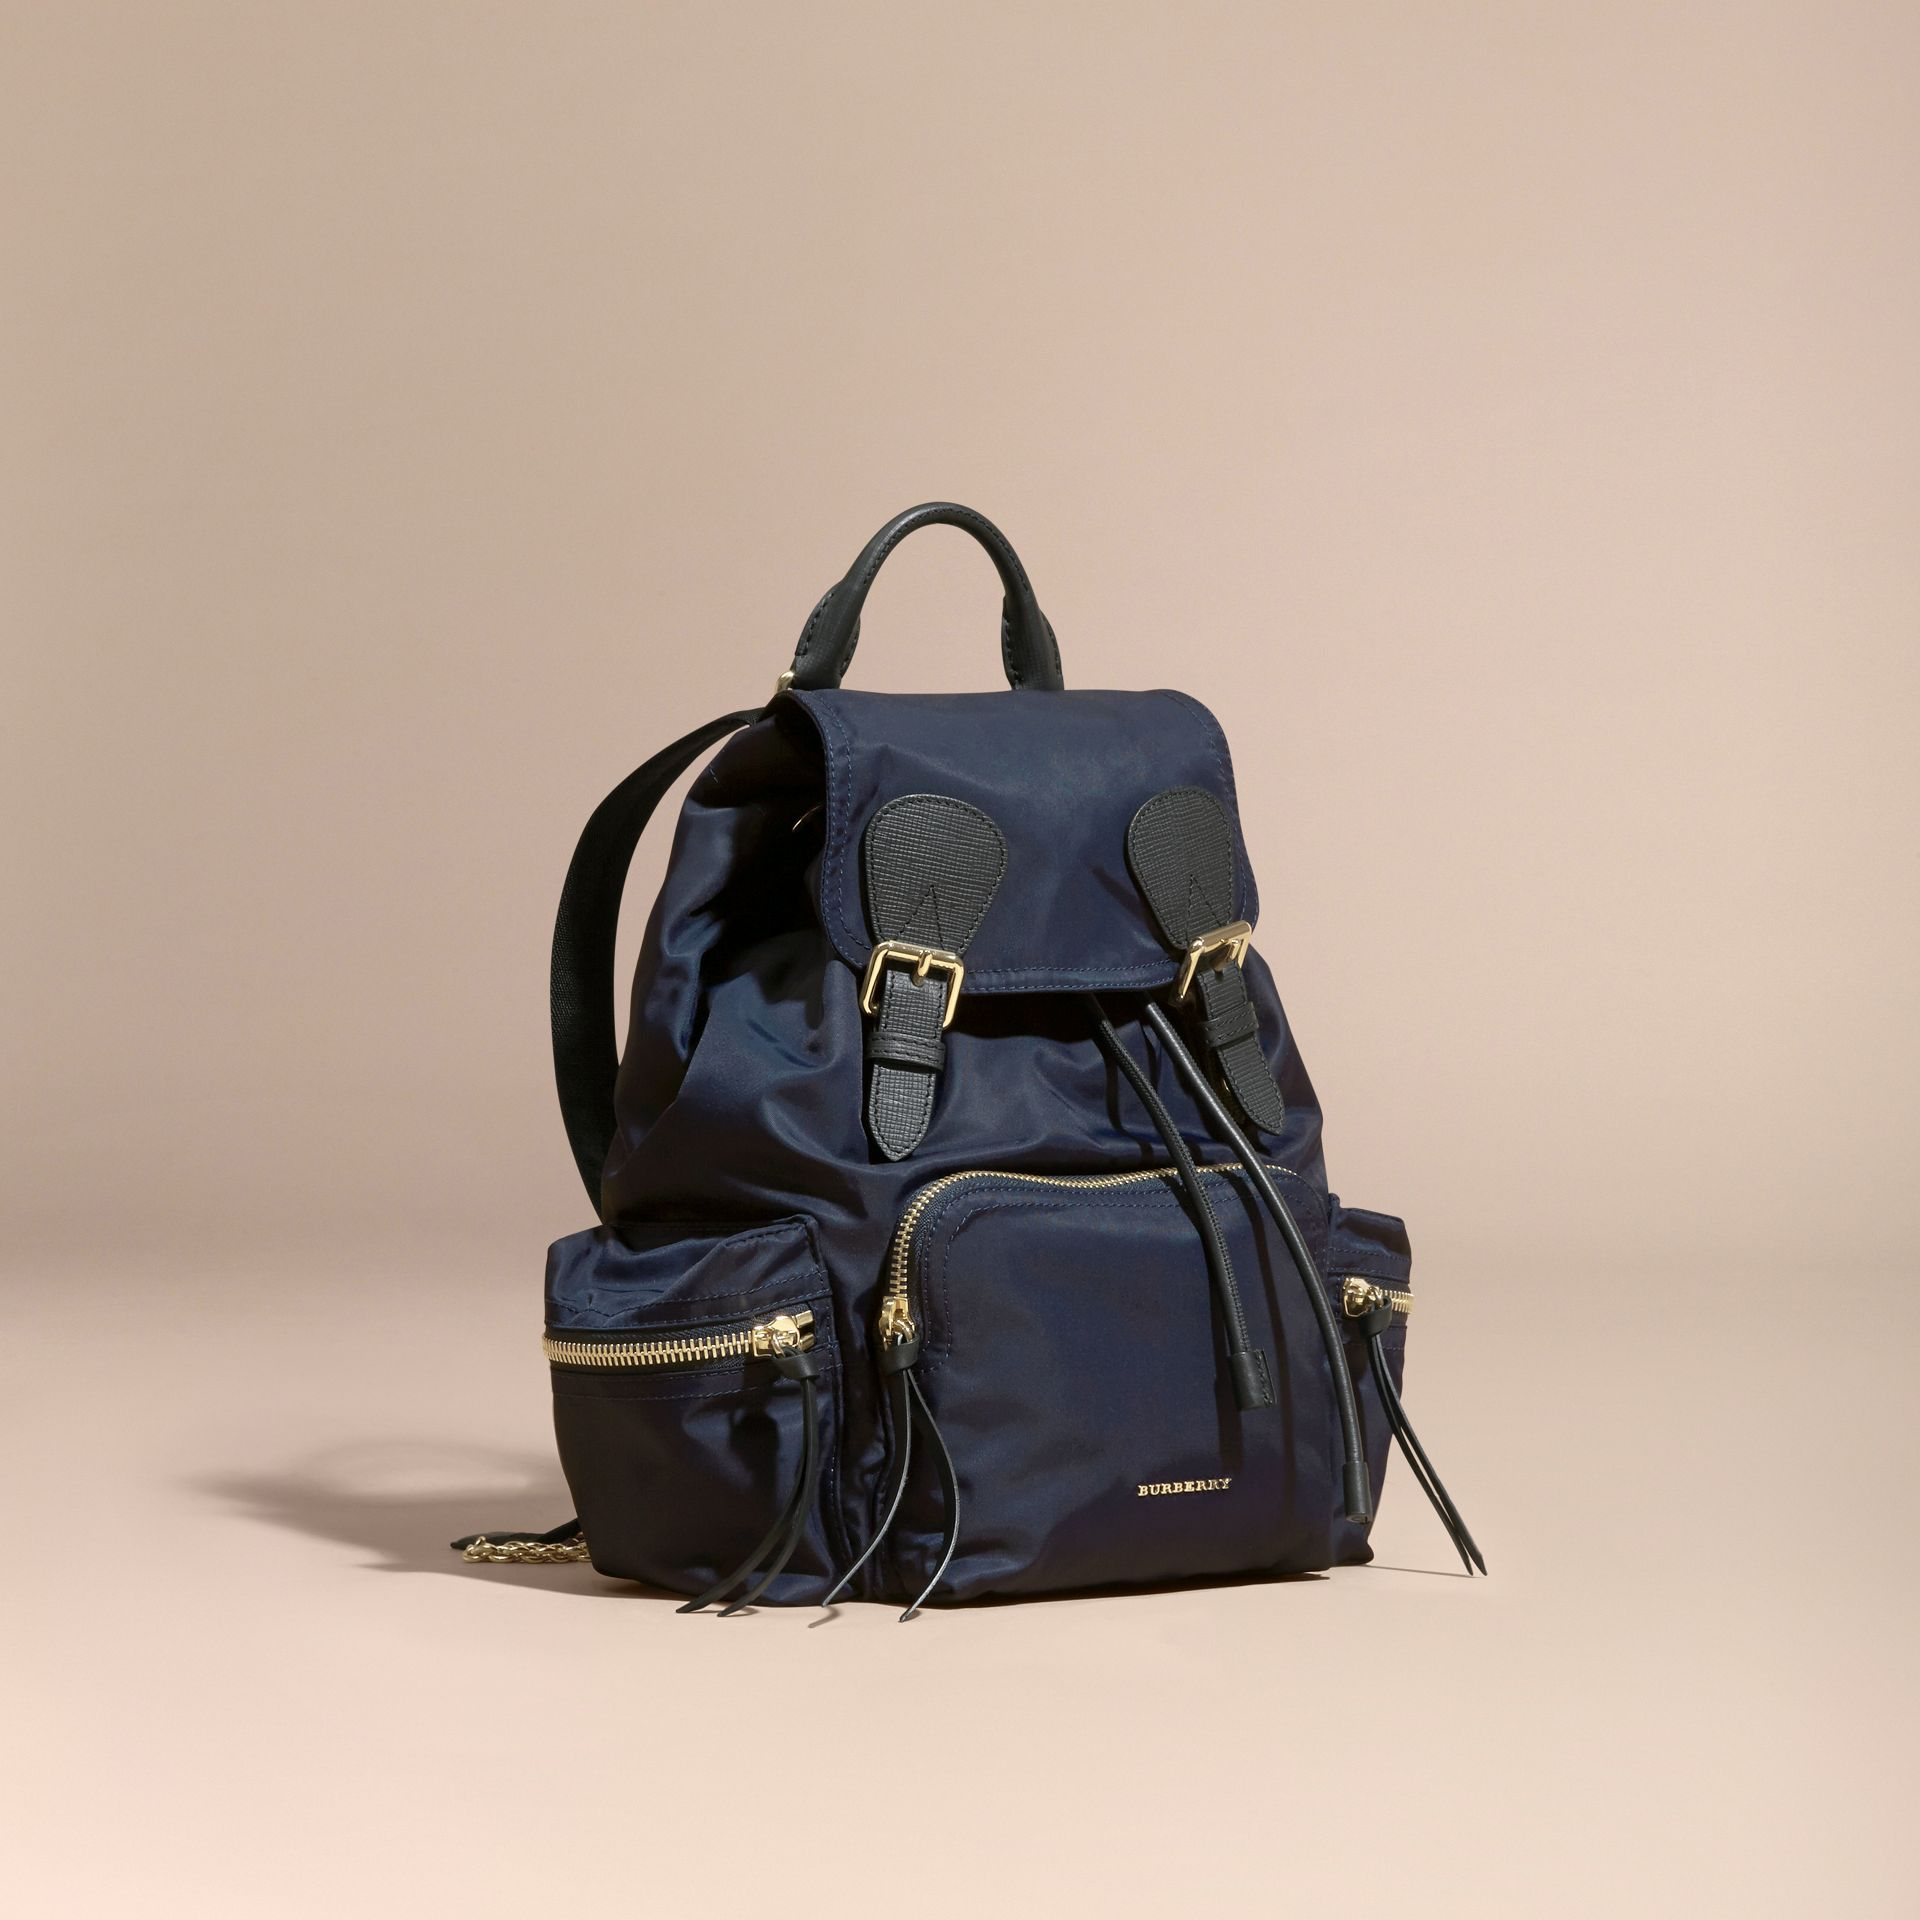 Sac The Rucksack medium en nylon technique et cuir Bleu Encre - photo de la galerie 1